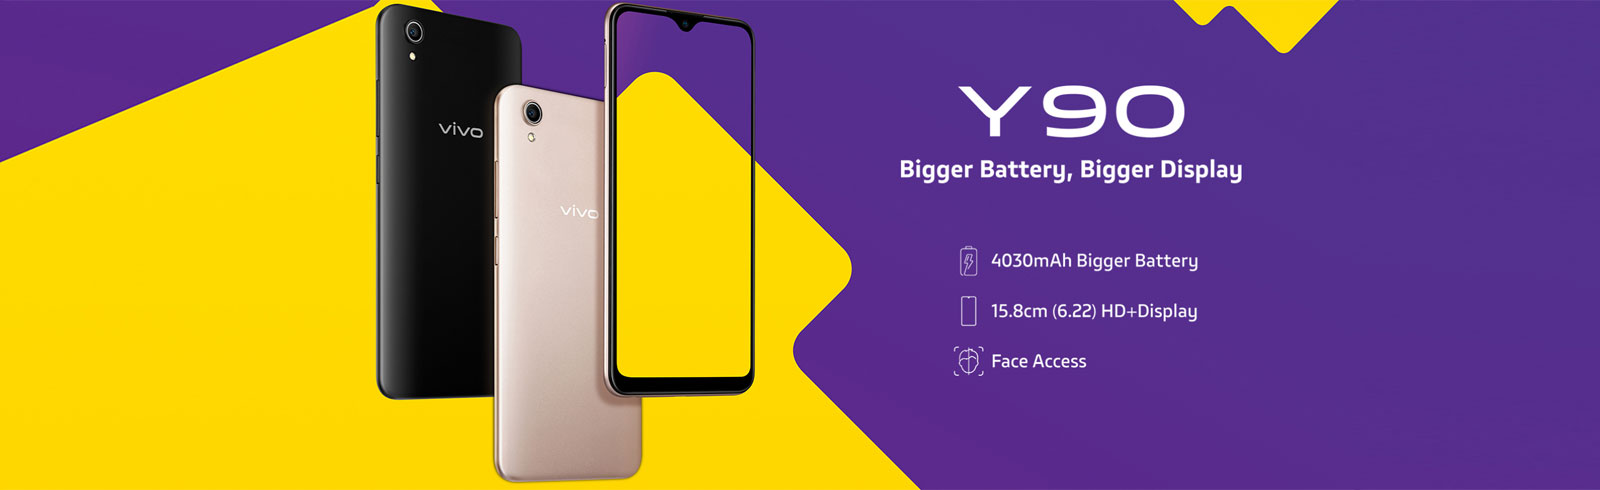 Vivo Y90 goes official in India and Pakistan